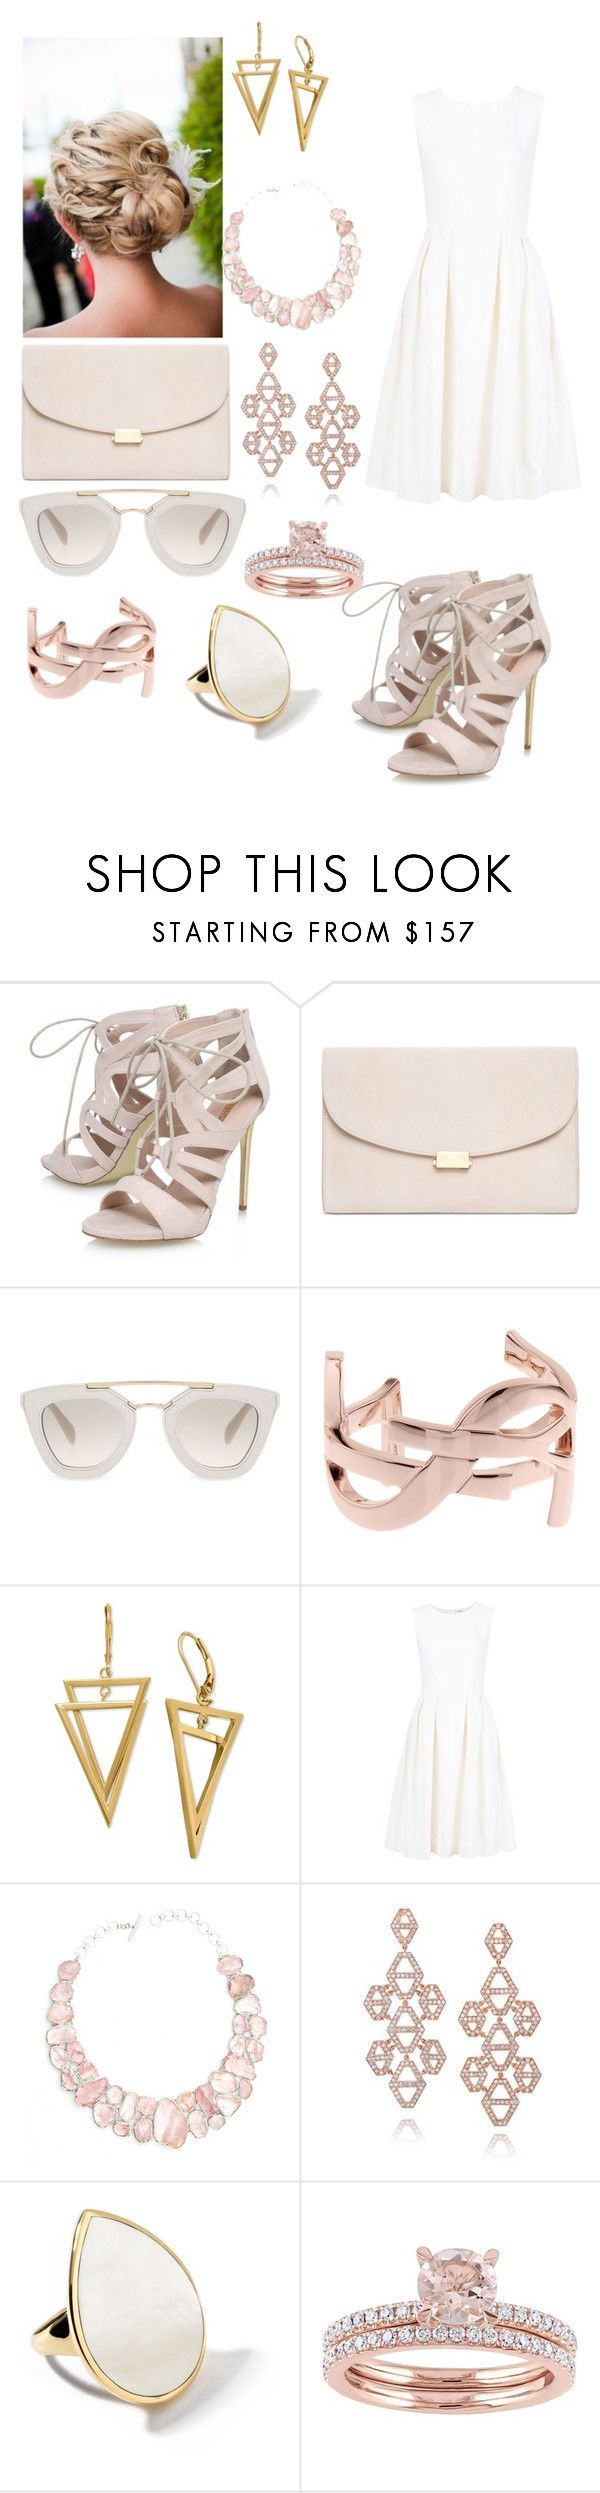 """Untitled #115"" by hannahbrownie13 on Polyvore featuring Carvela, Mansur Gavriel, Prada, Yves Saint Laurent, ADAM, Poppy Jewellery, Walters Faith and Ippolita"